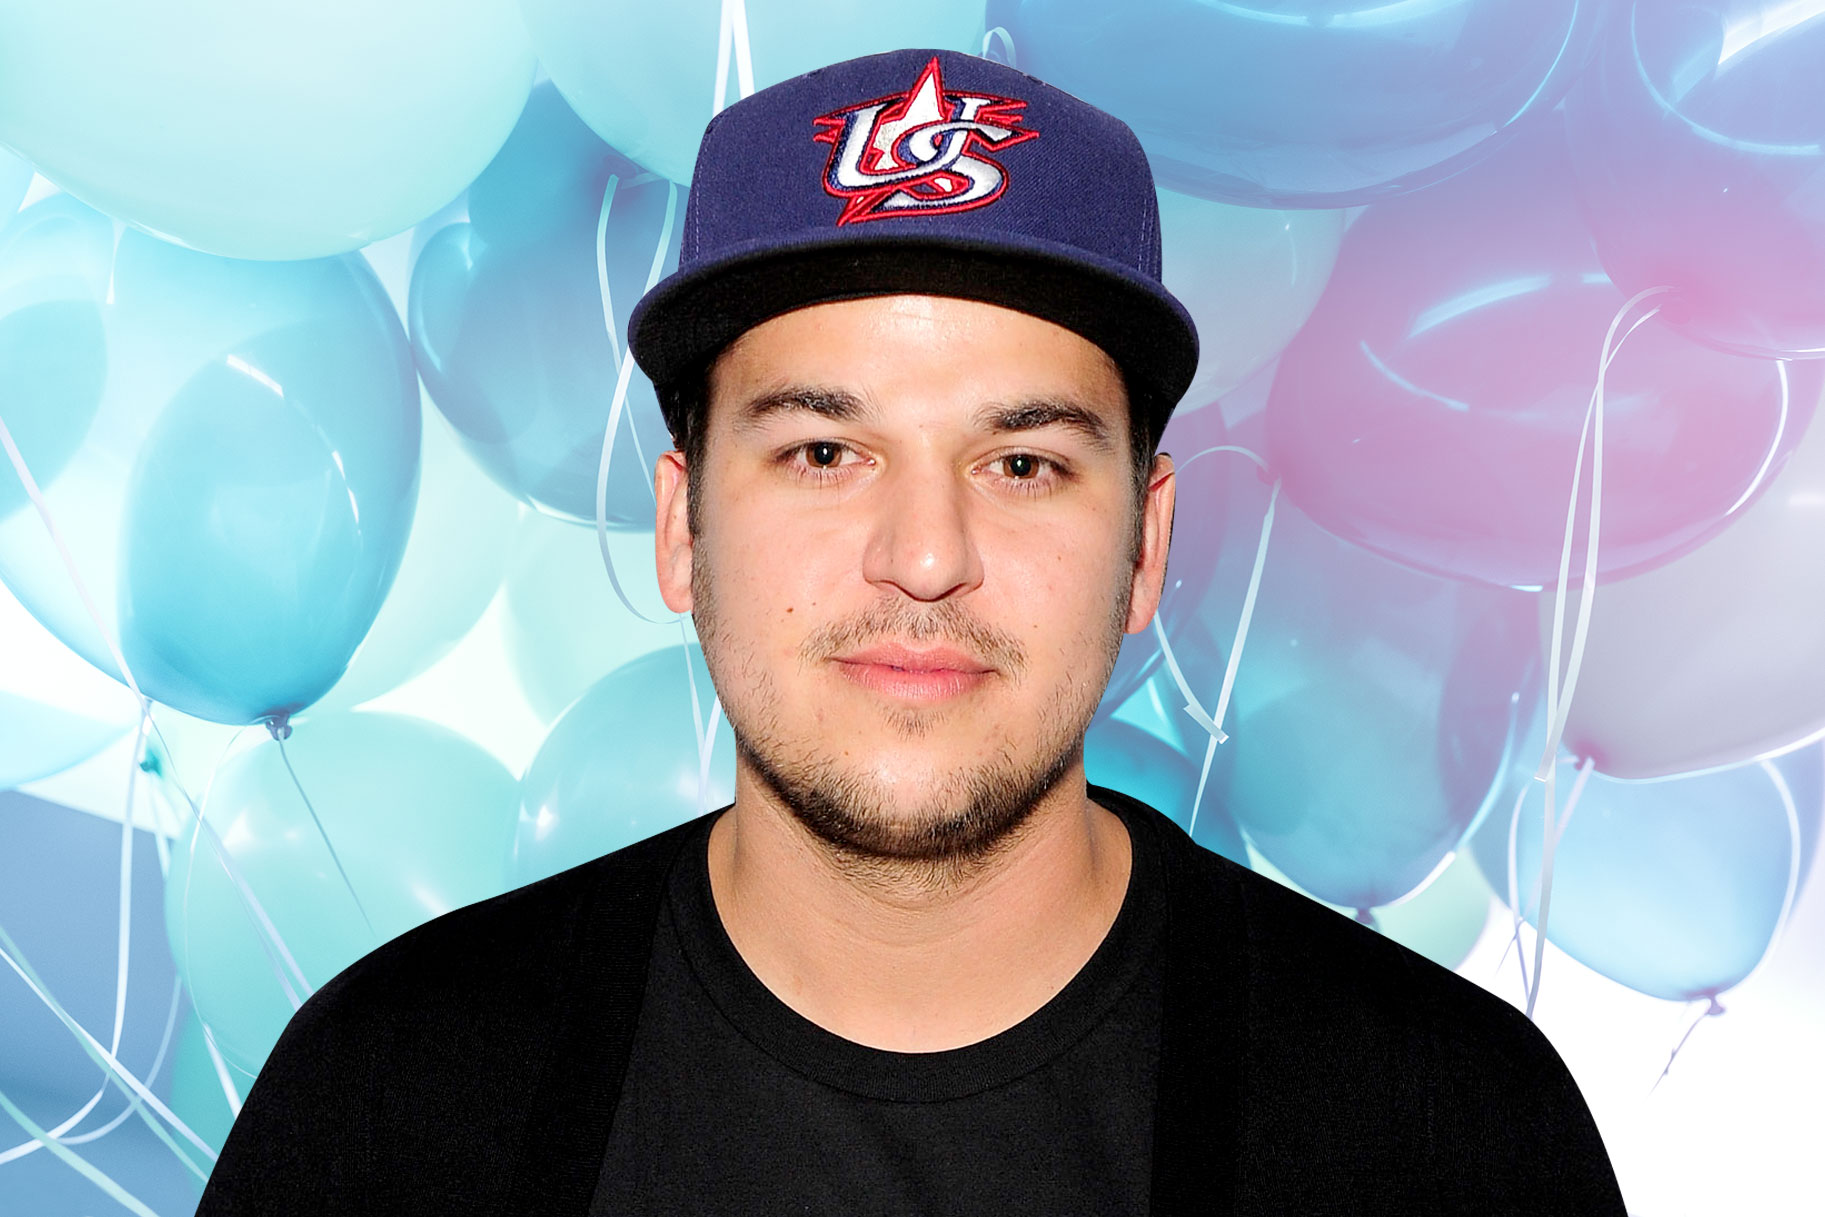 rob-kardashian-reveals-major-weightloss-makeover-khloes-36th-birthdaybash-before-after-pics